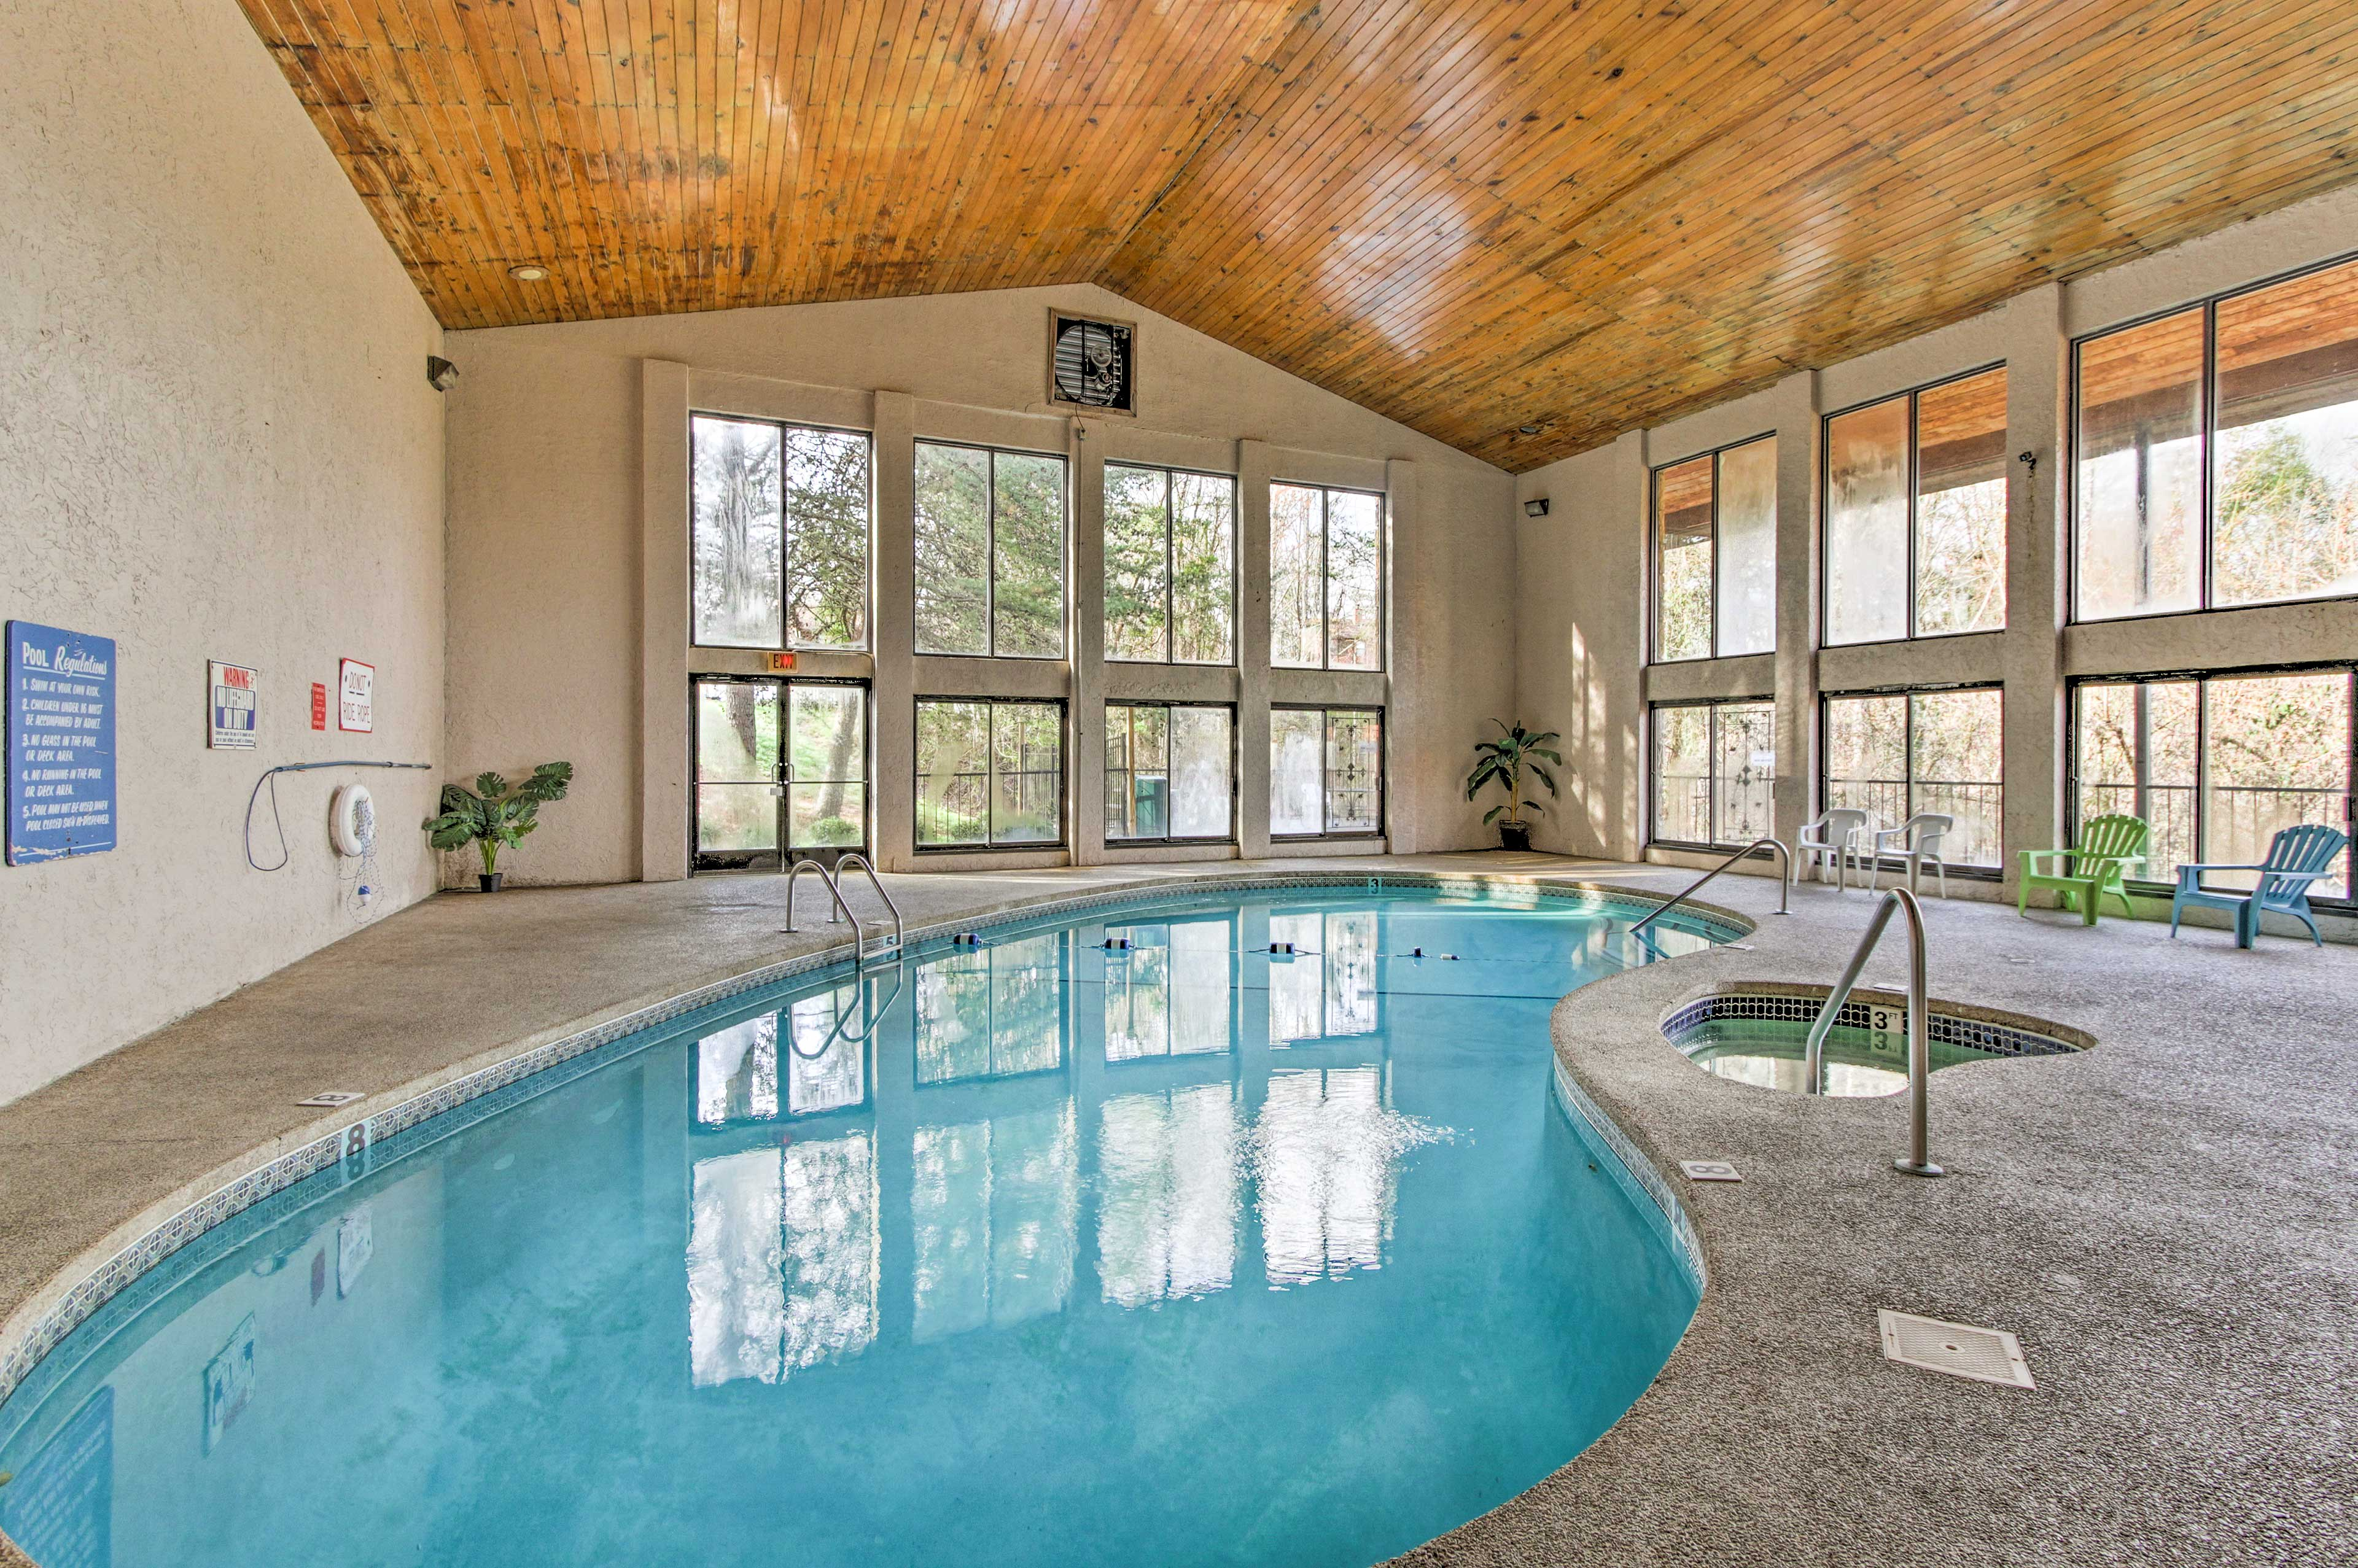 Spend easy afternoons enjoying the on-site amenities!